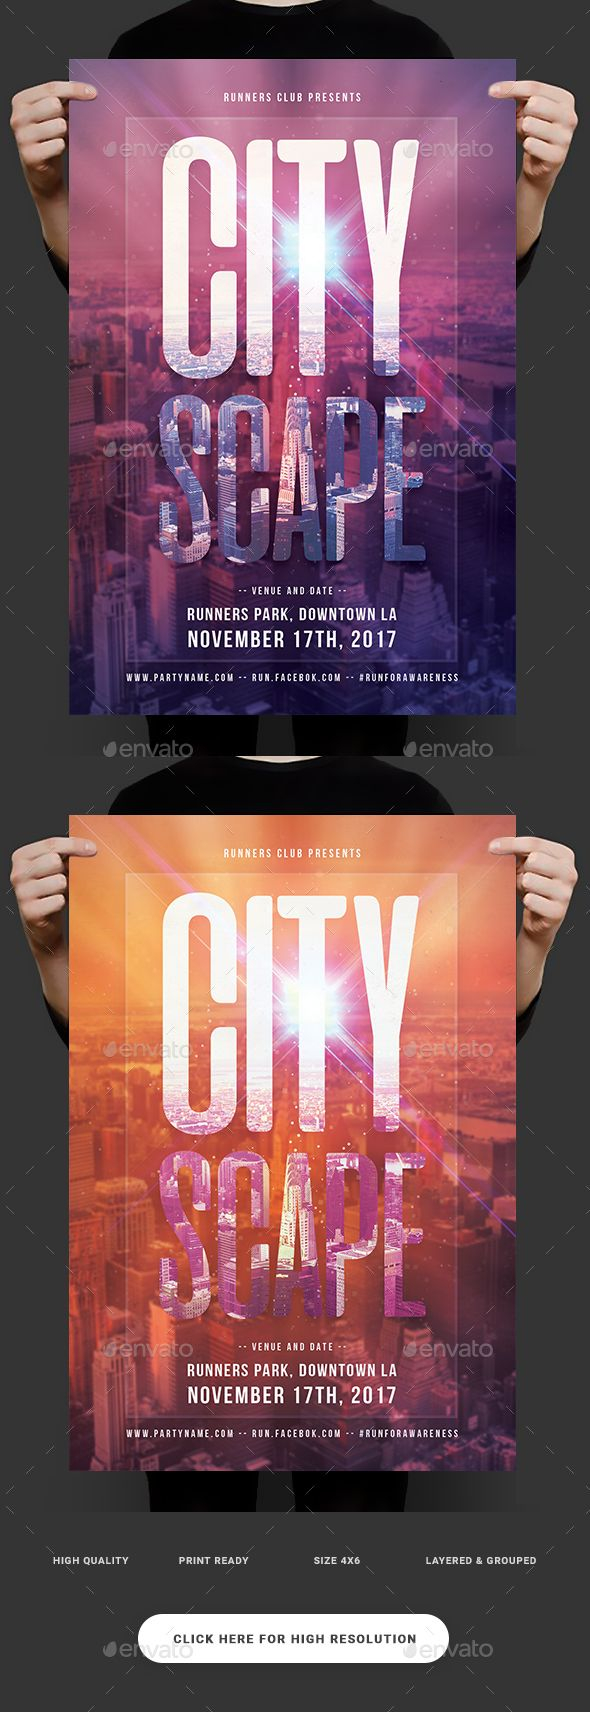 11 best sports flyers posters web images on pinterest event urban cityscape flyer fandeluxe Gallery